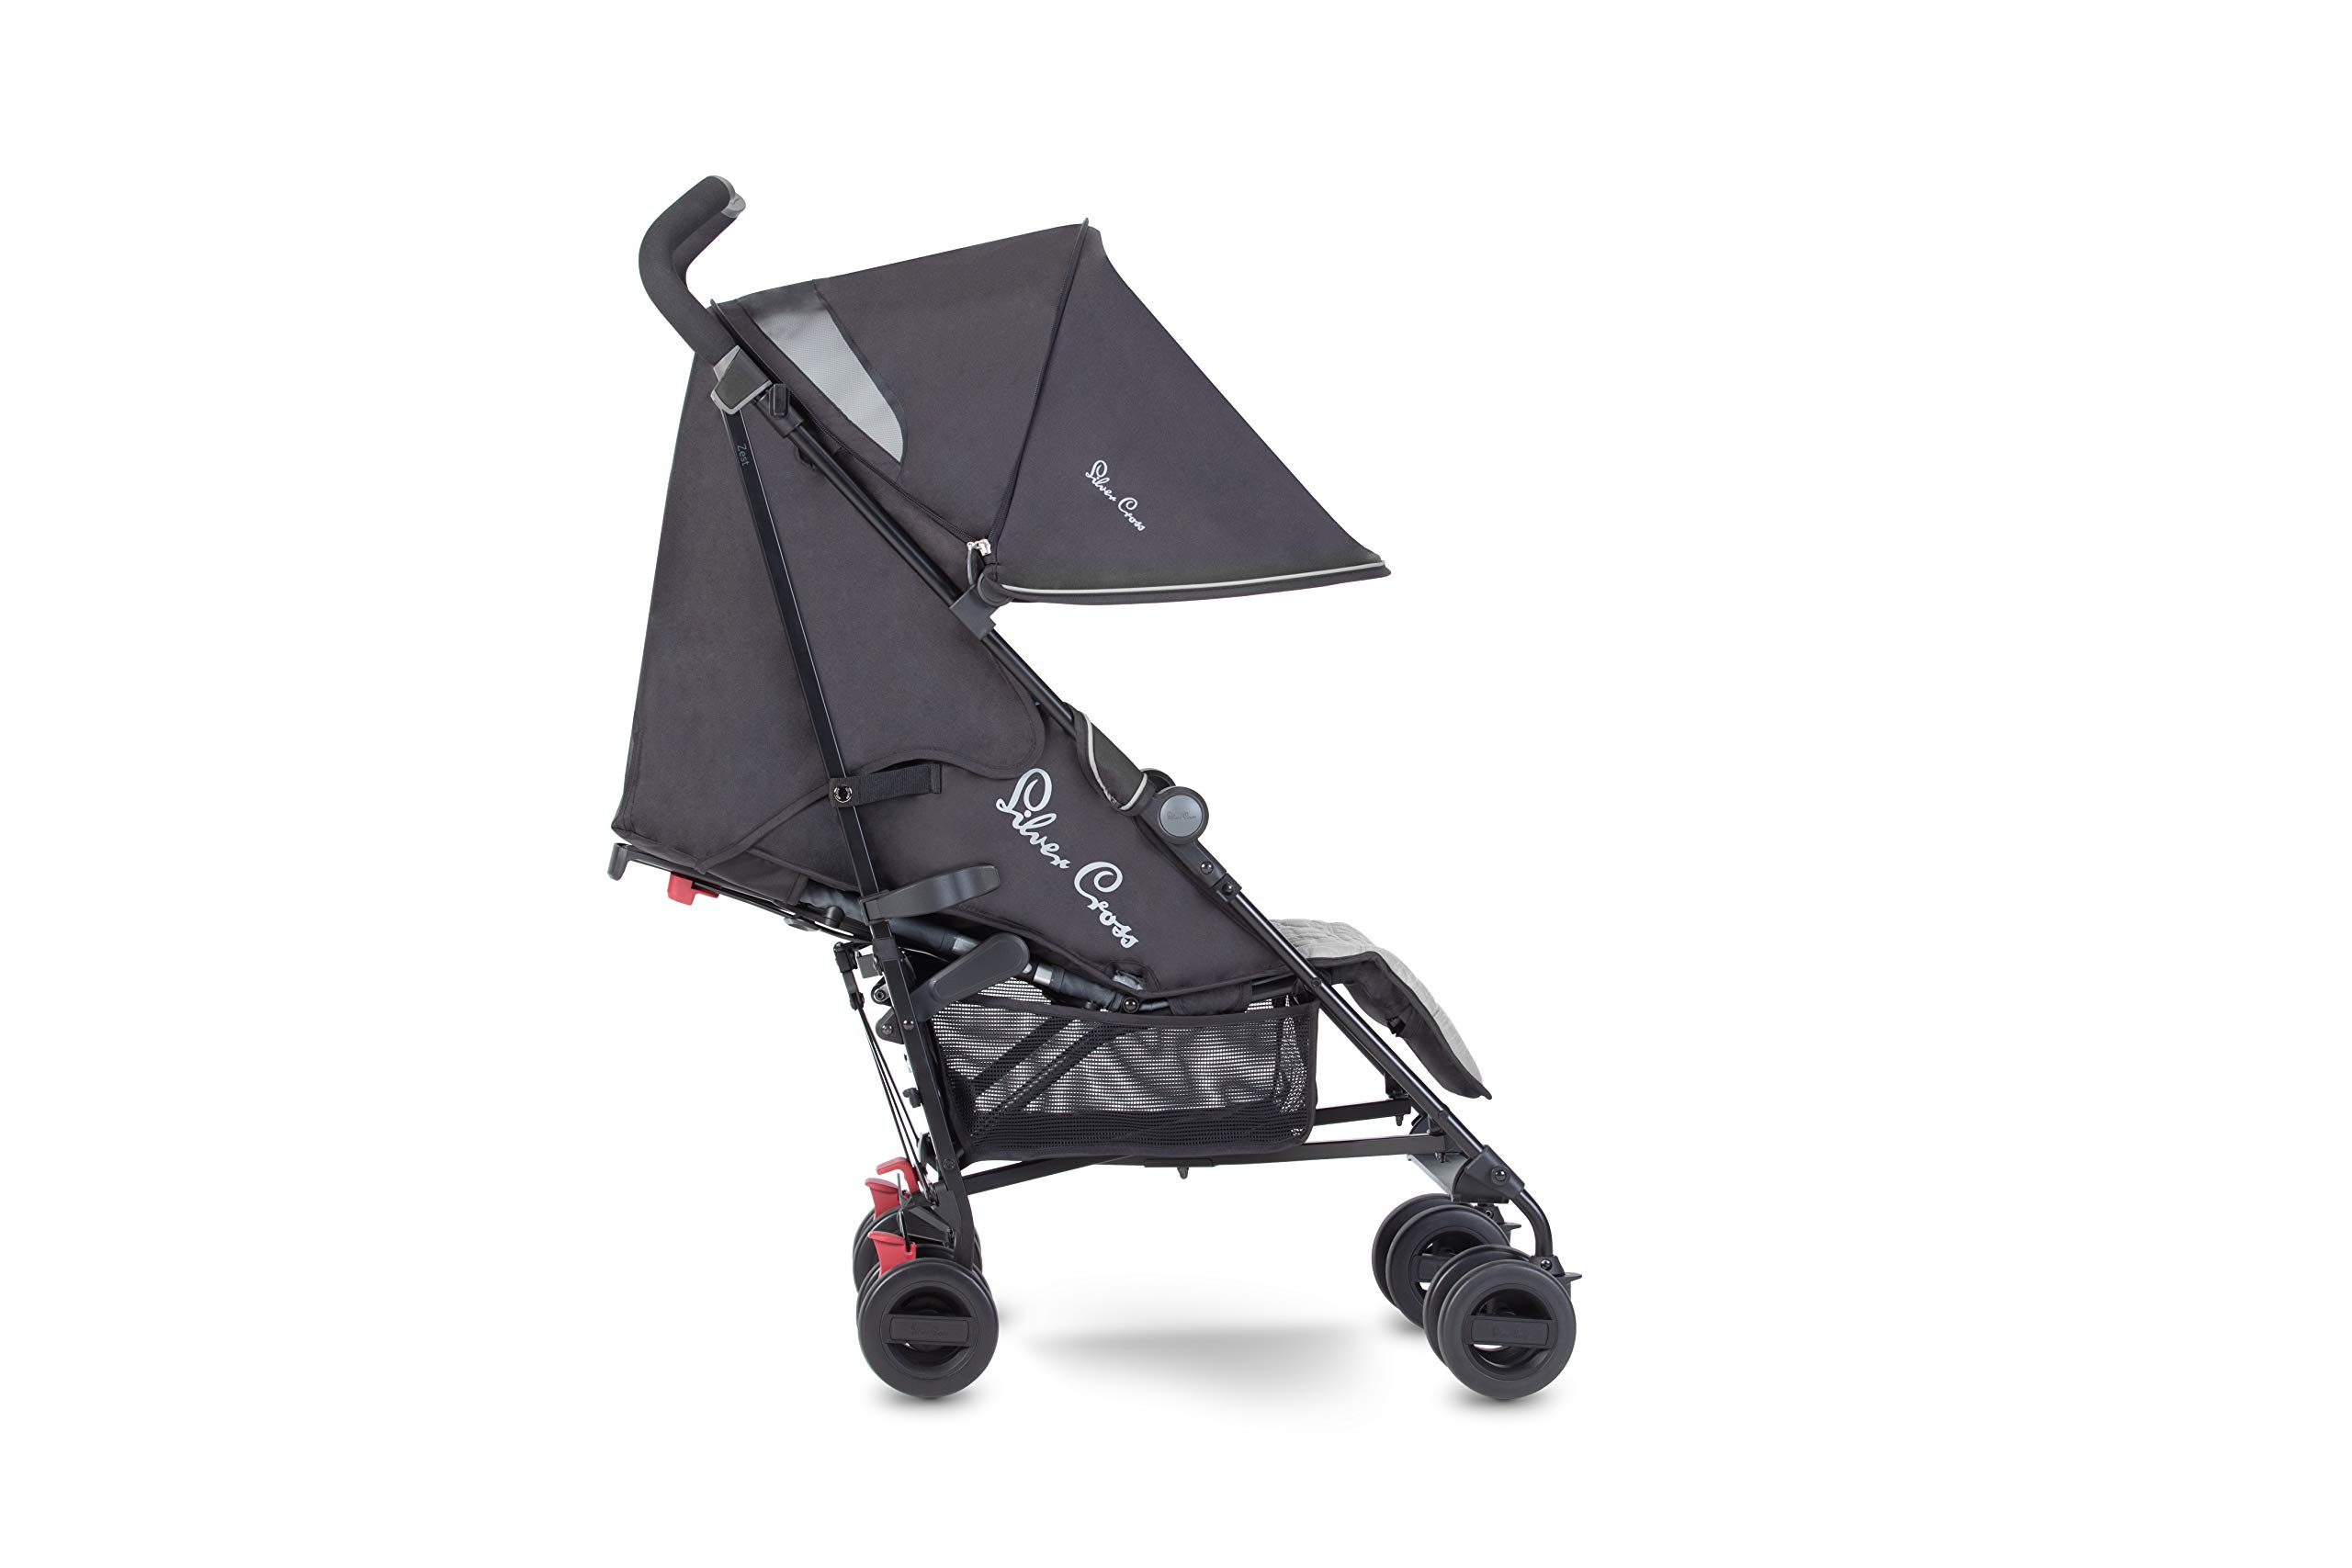 Silver Cross Zest Silver Silver Cross Ultra lightweight zest pushchair, weighing in at only 5.8kg, is suitable from birth up to 25kg It has a convenient one-hand fold, while the compact design makes it easy to store The fully lie-flat recline is best in its class 1